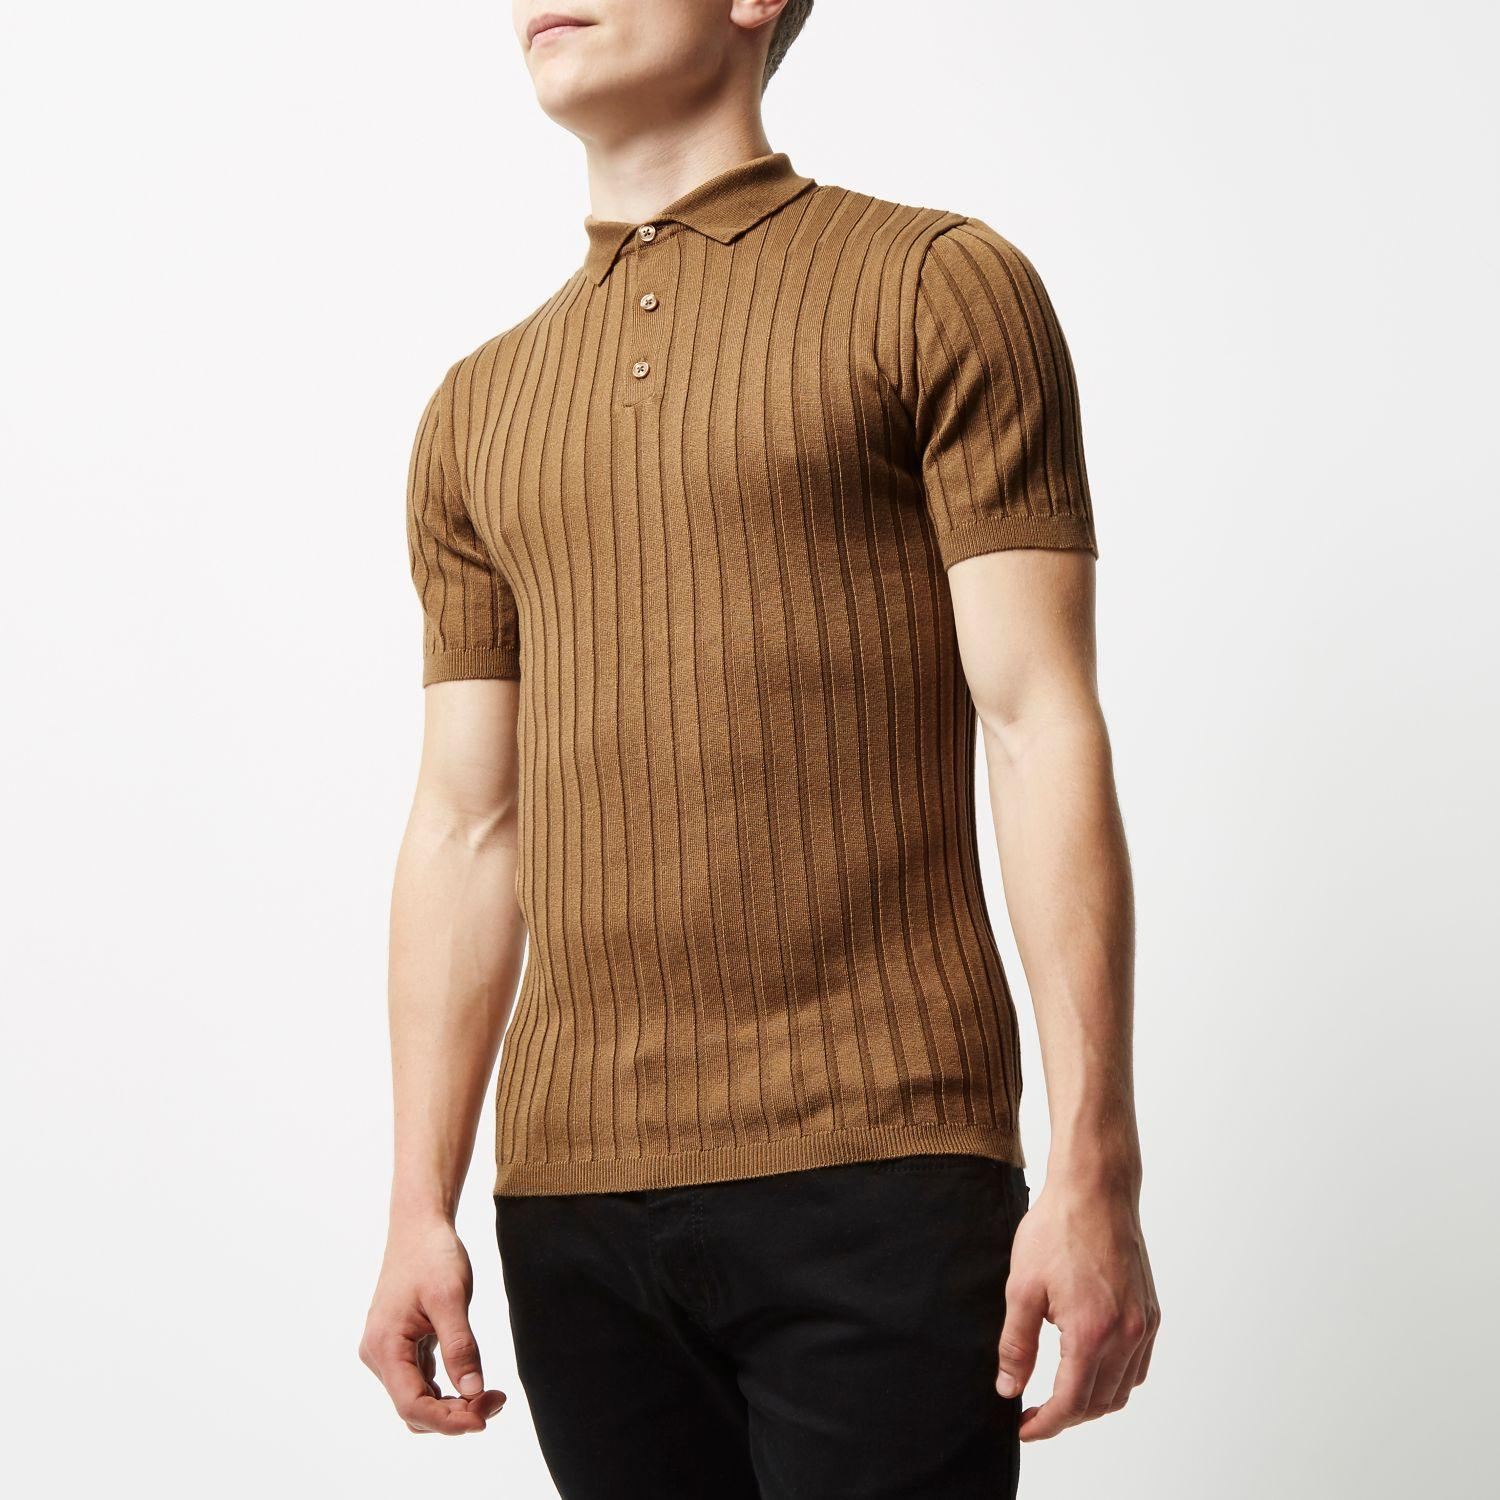 River island light brown ribbed muscle fit polo shirt in for Light brown polo shirt